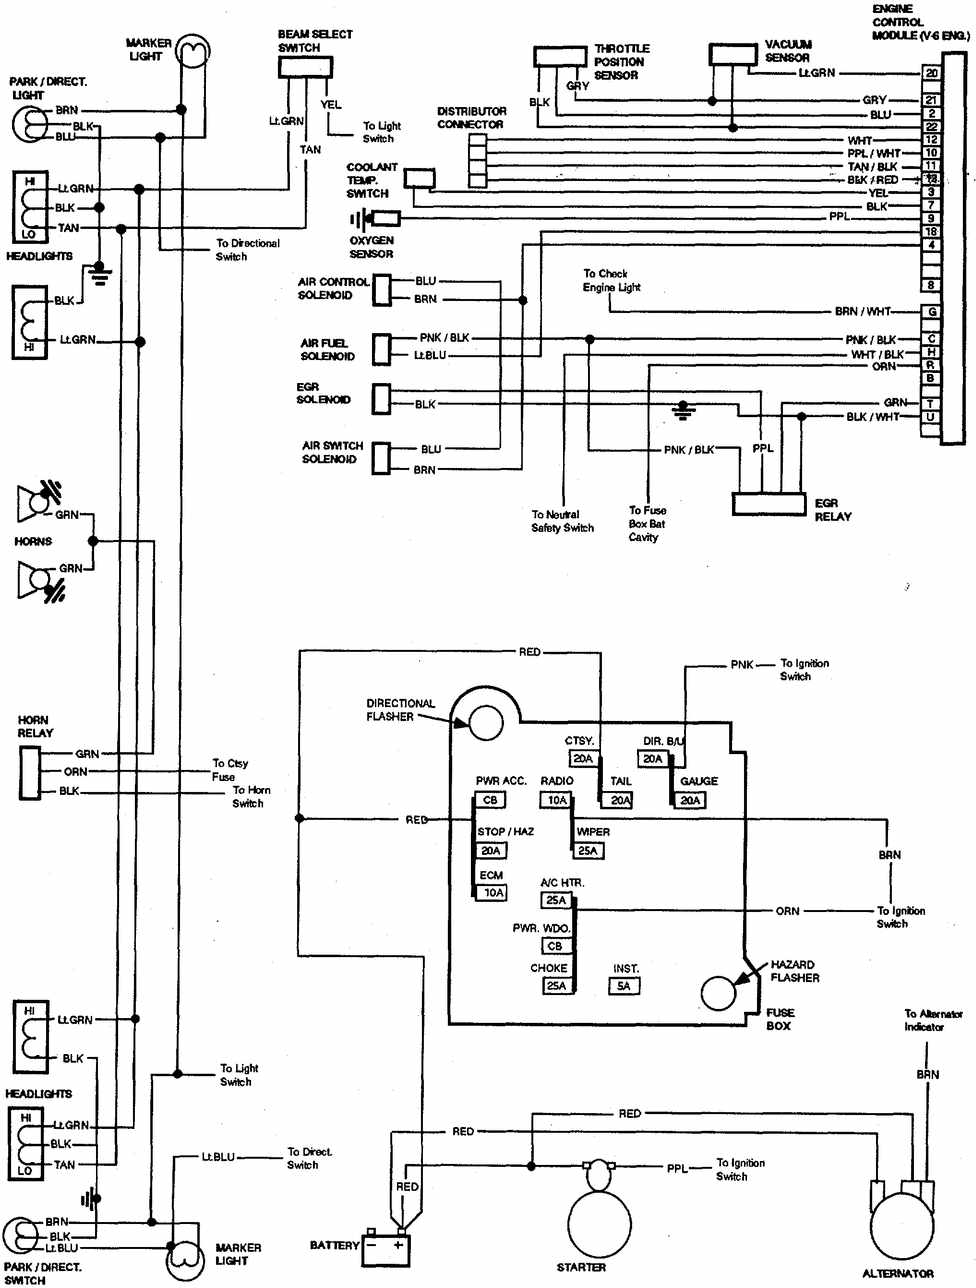 06 impala wiring diagram